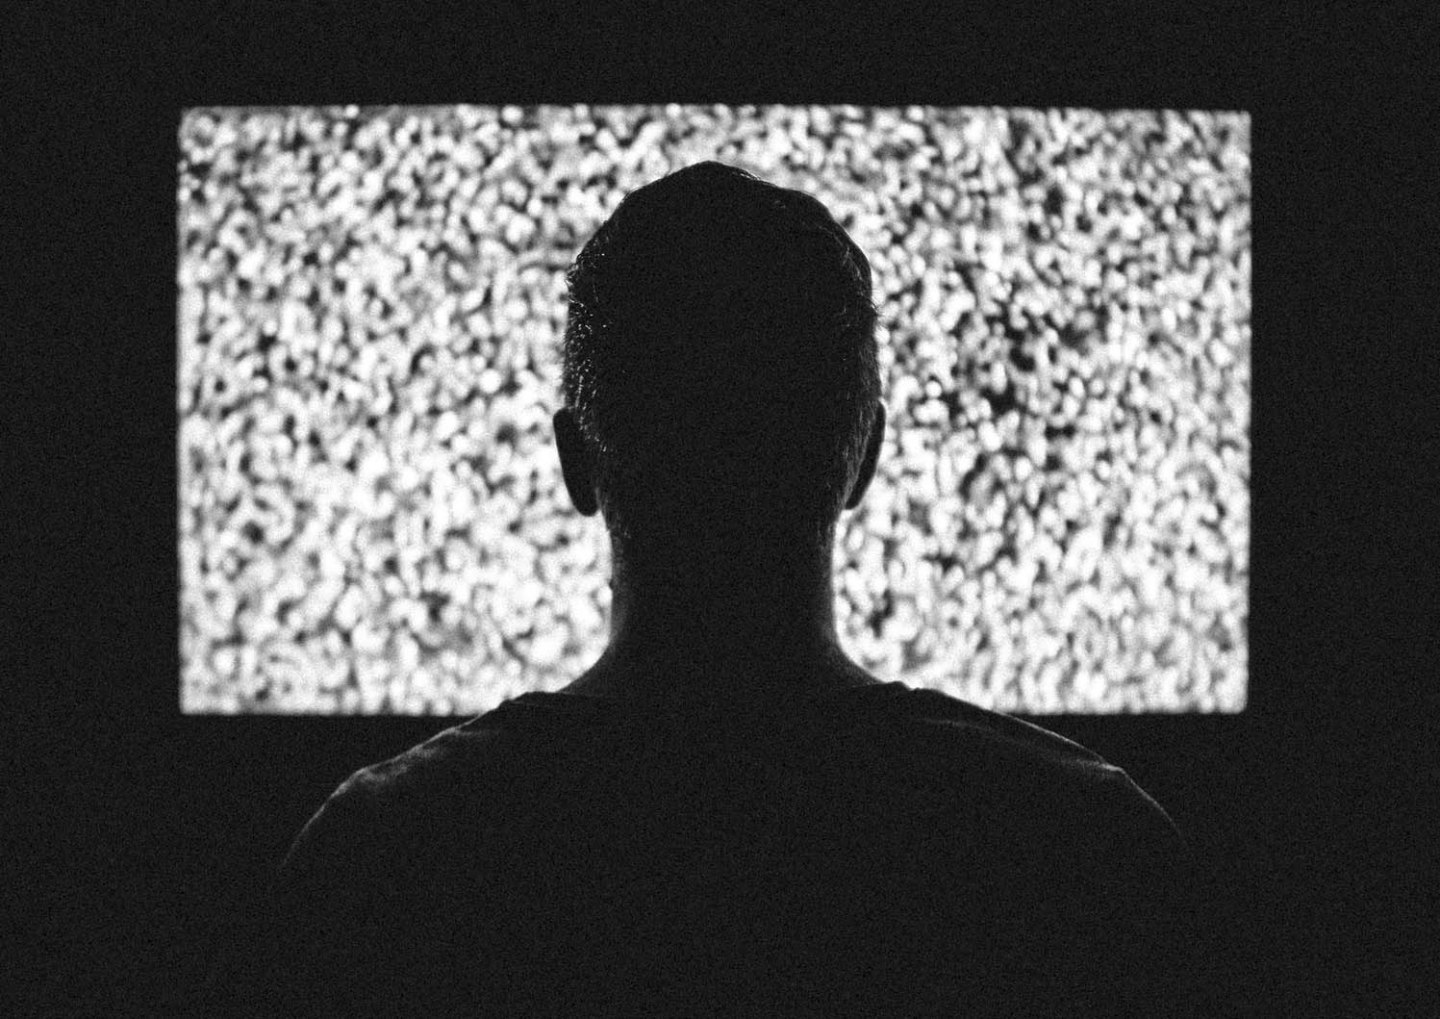 2020 Vision: Getting Back to the Fundamentals of Connected TV Advertising